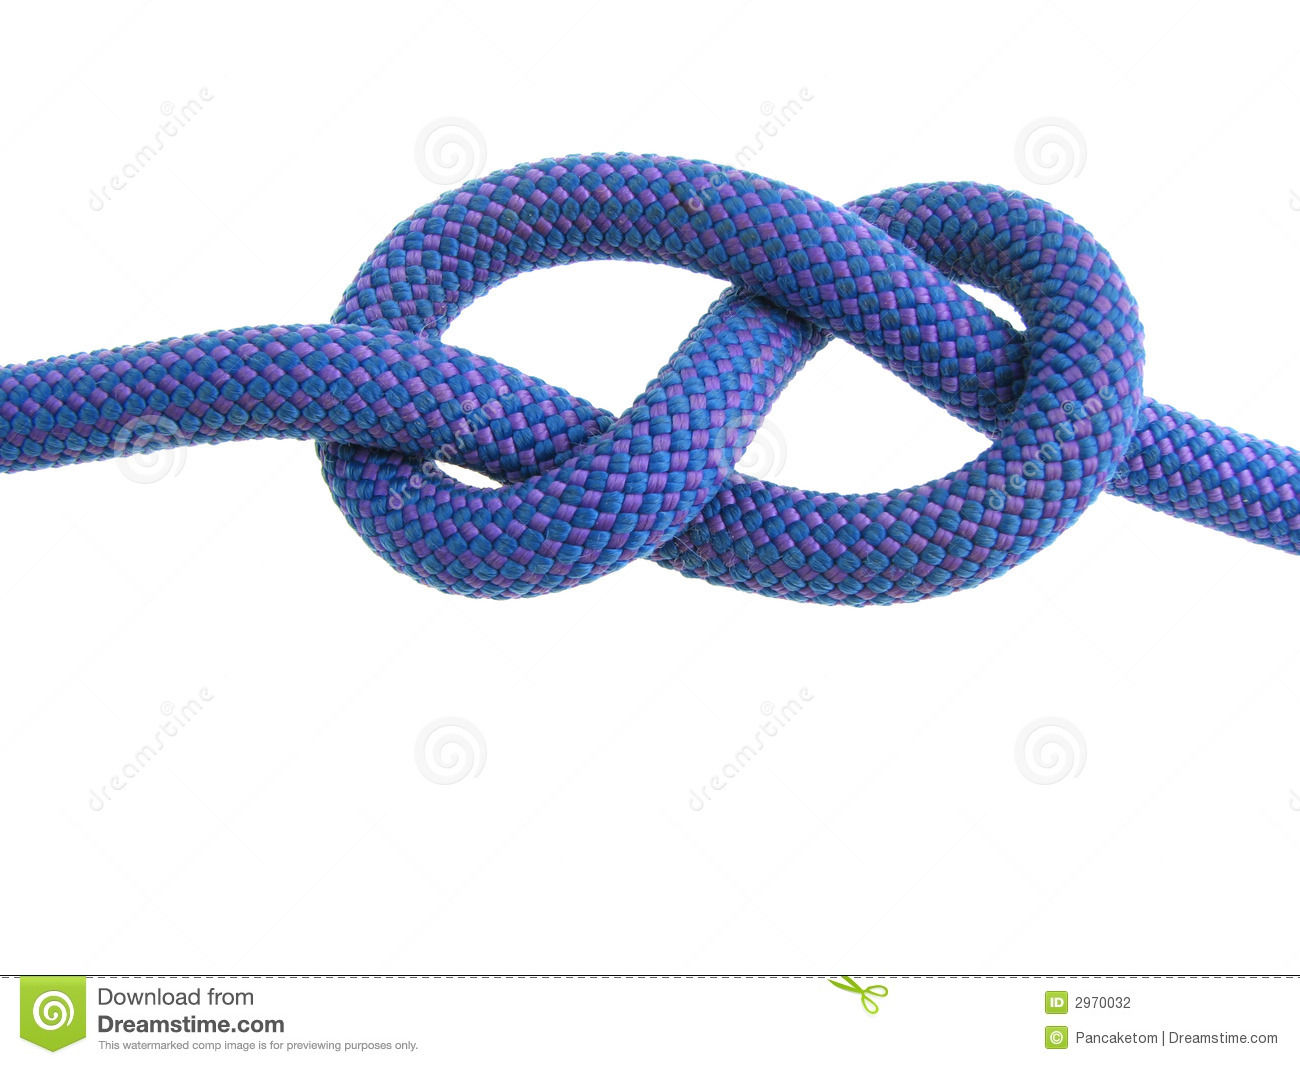 Figure eight knot in blue climbing rope isolated on white.